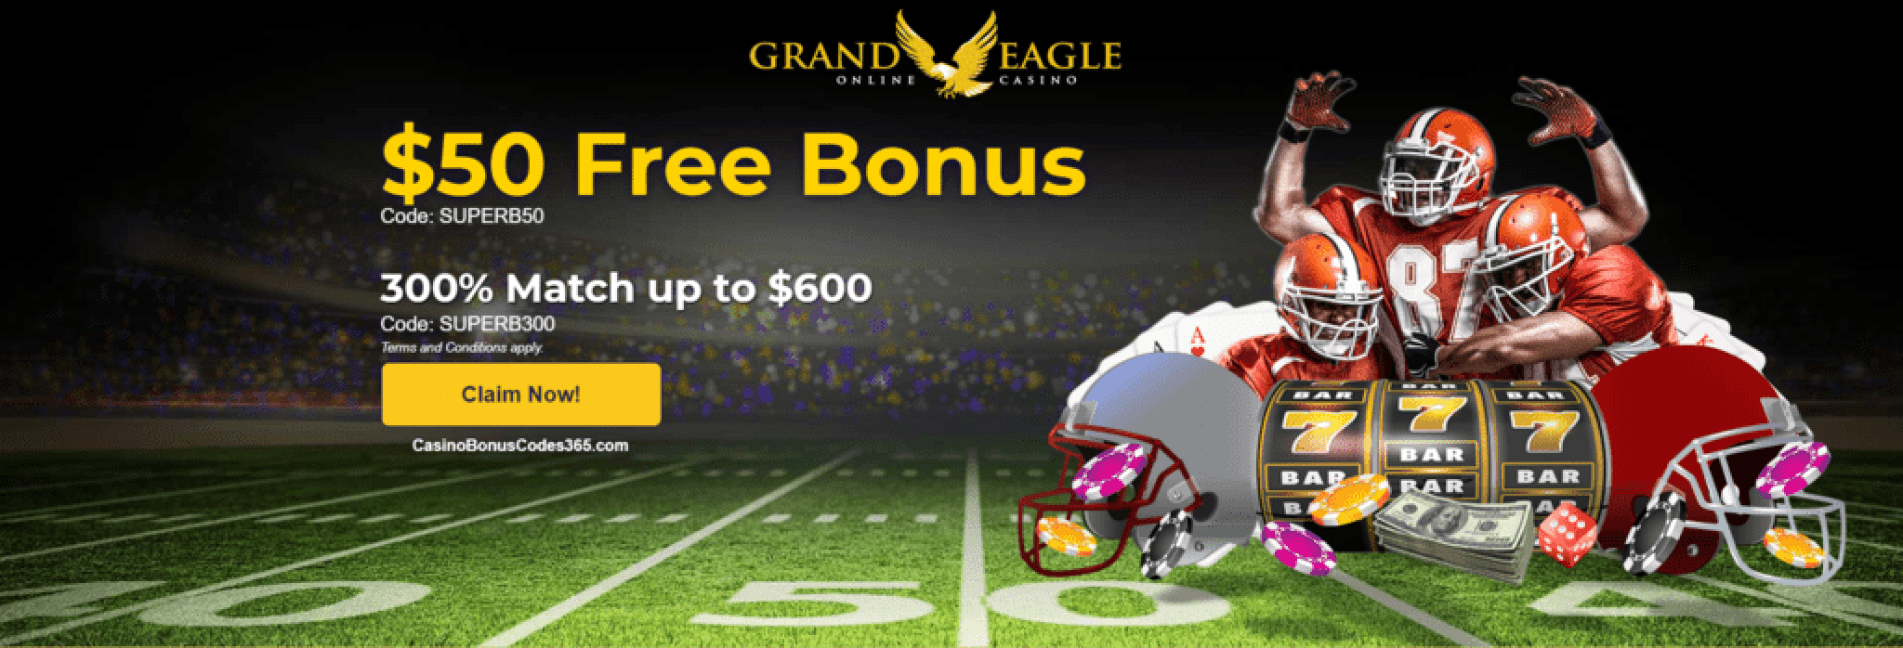 Grand Eagle Casino Super Bowl 2018 50 FREE Chip plus 300% Match up to $600